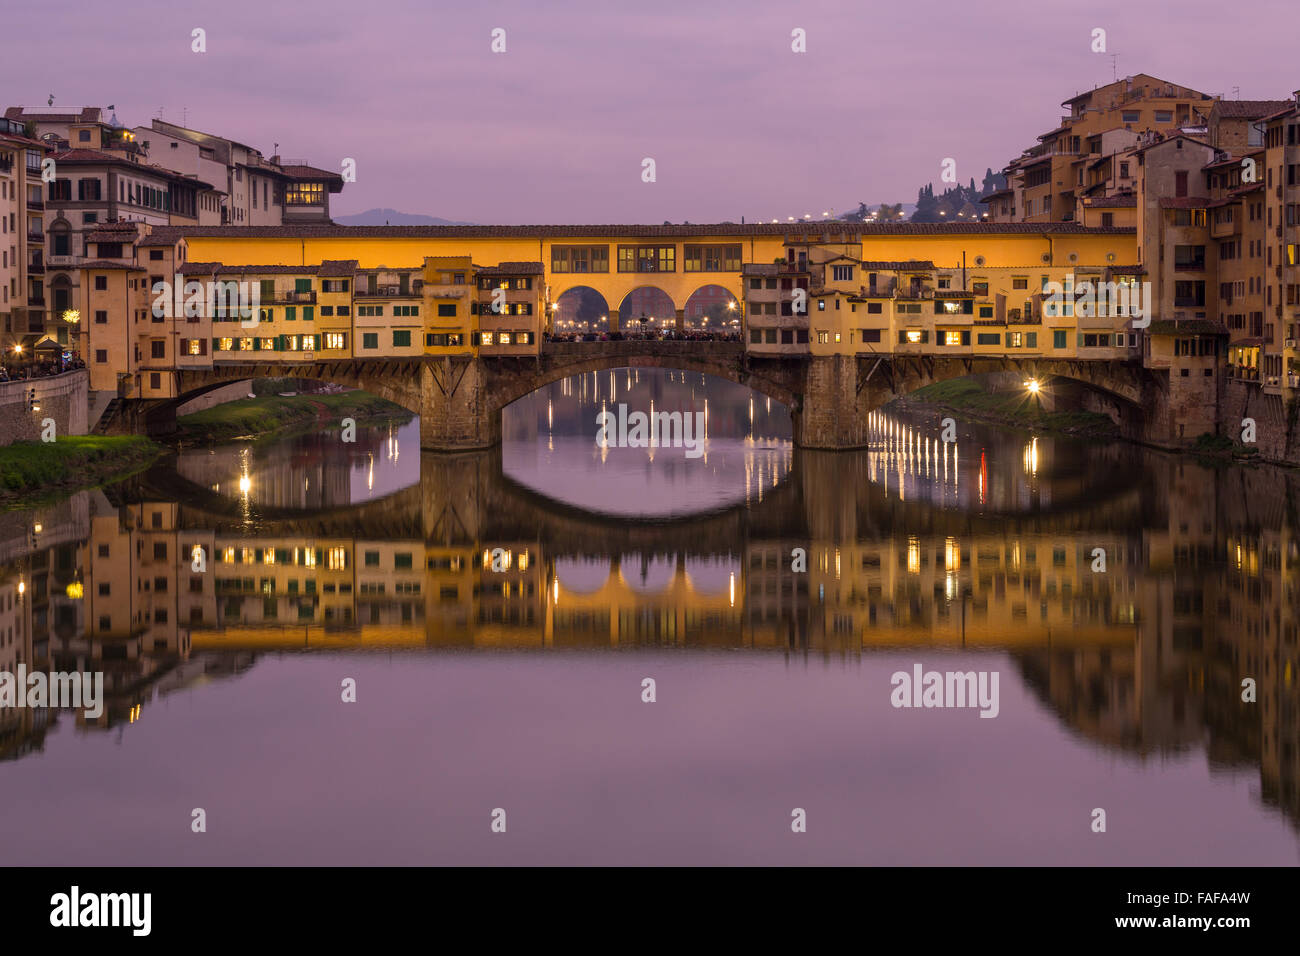 Ponte Vecchio over the Arno with symmetrical reflection in water, dusk, Florence, Tuscany, Italy - Stock Image